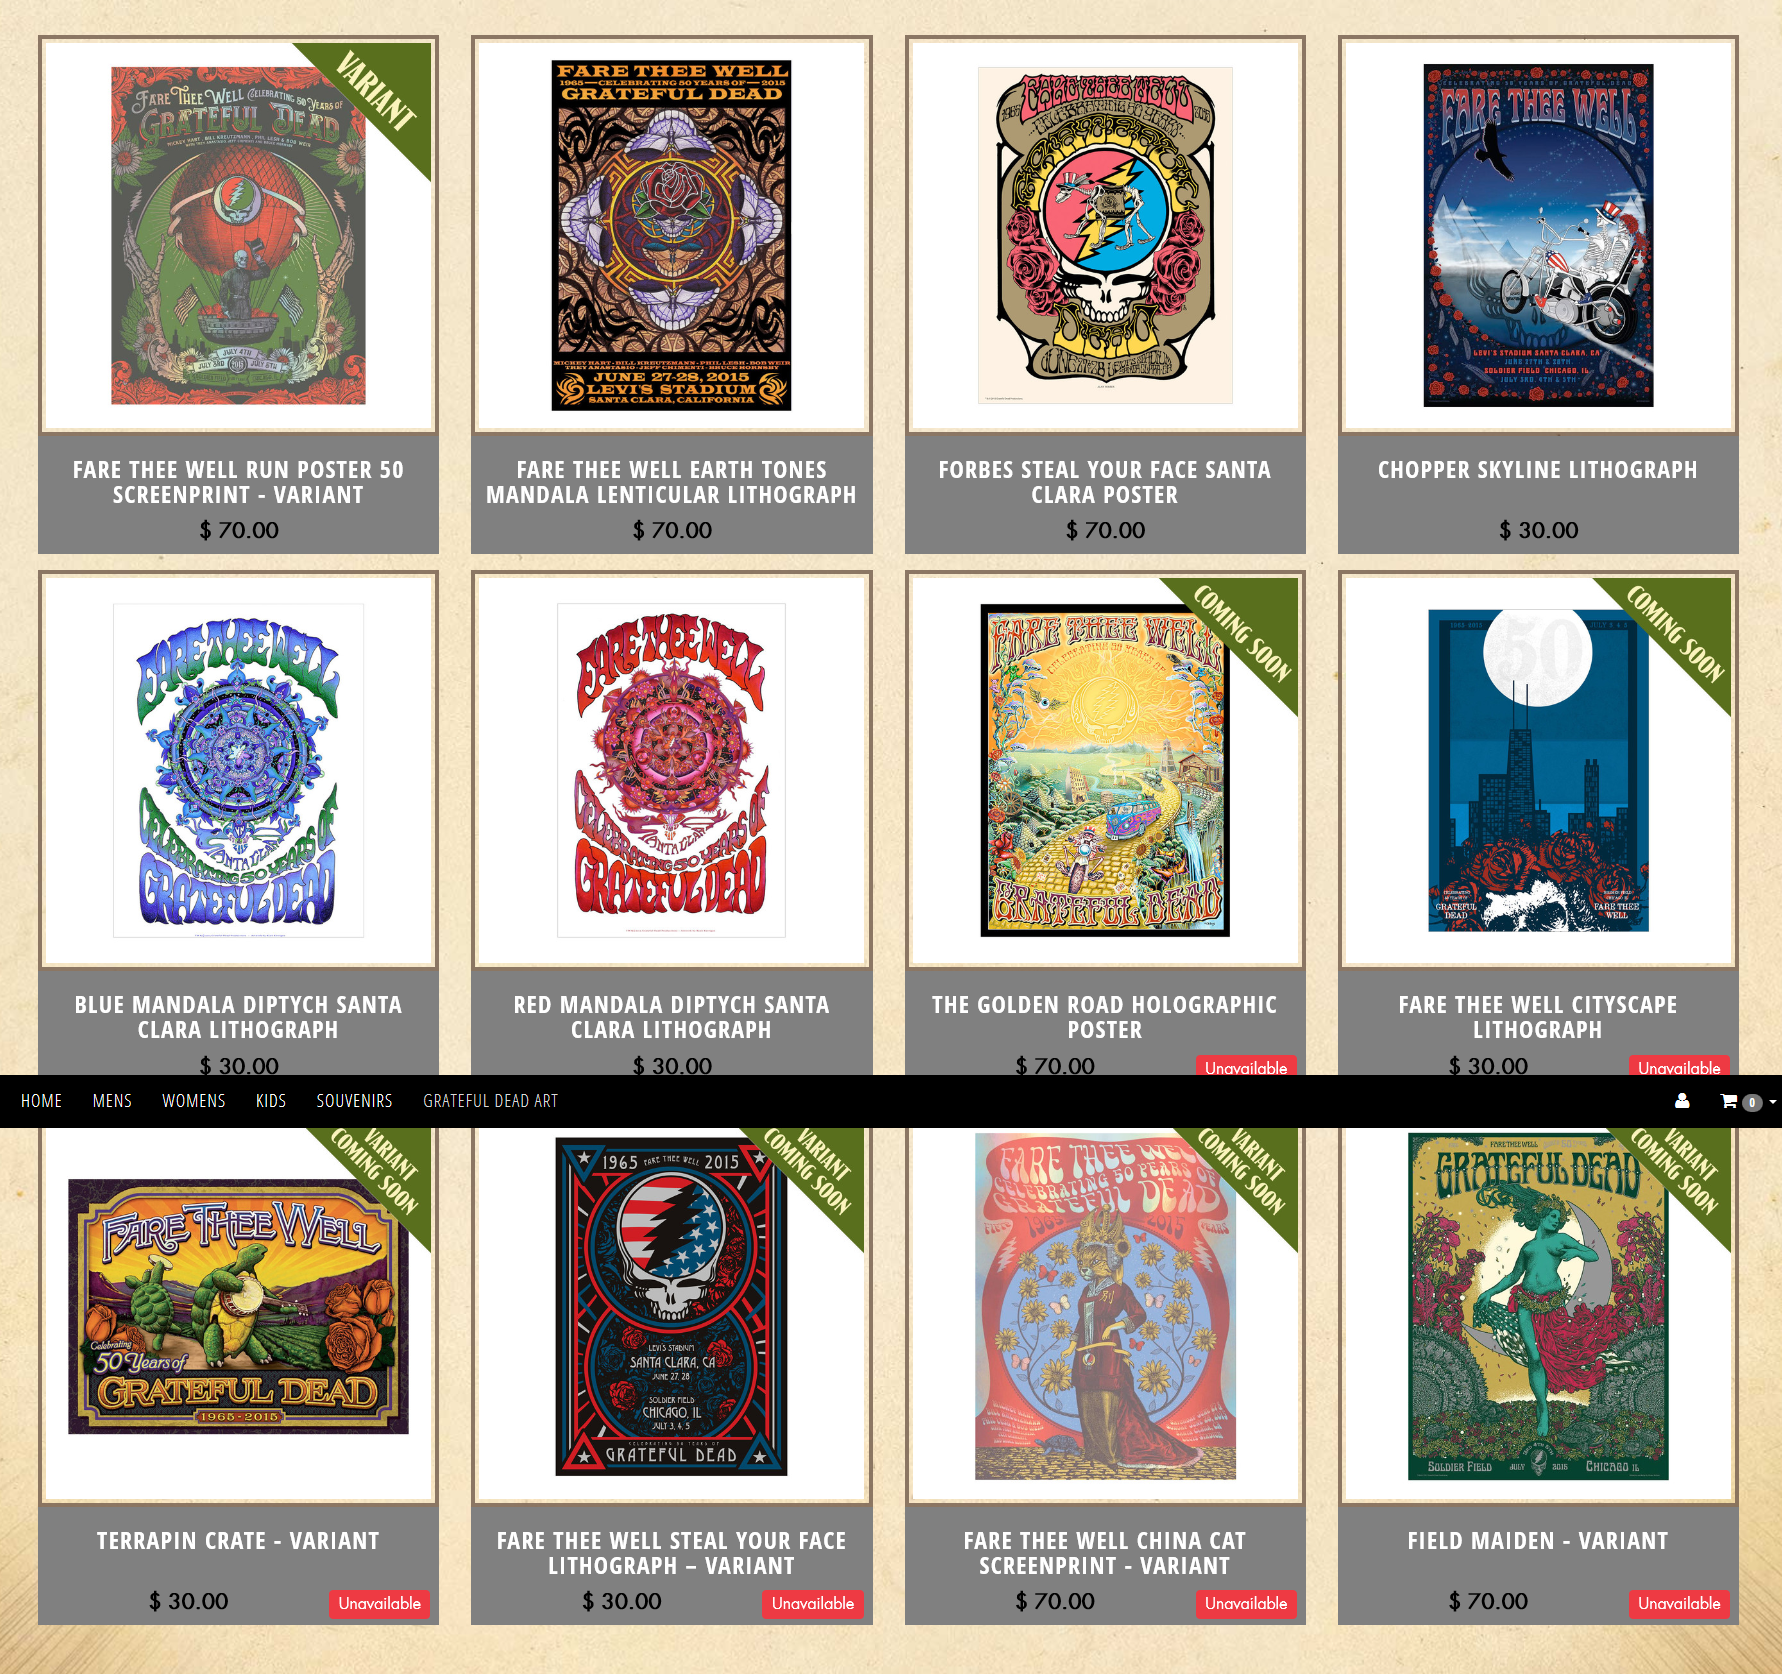 Grateful_Dead_Art_Fare_Thee_Well_Store_-_2015-09-10_11.57.59